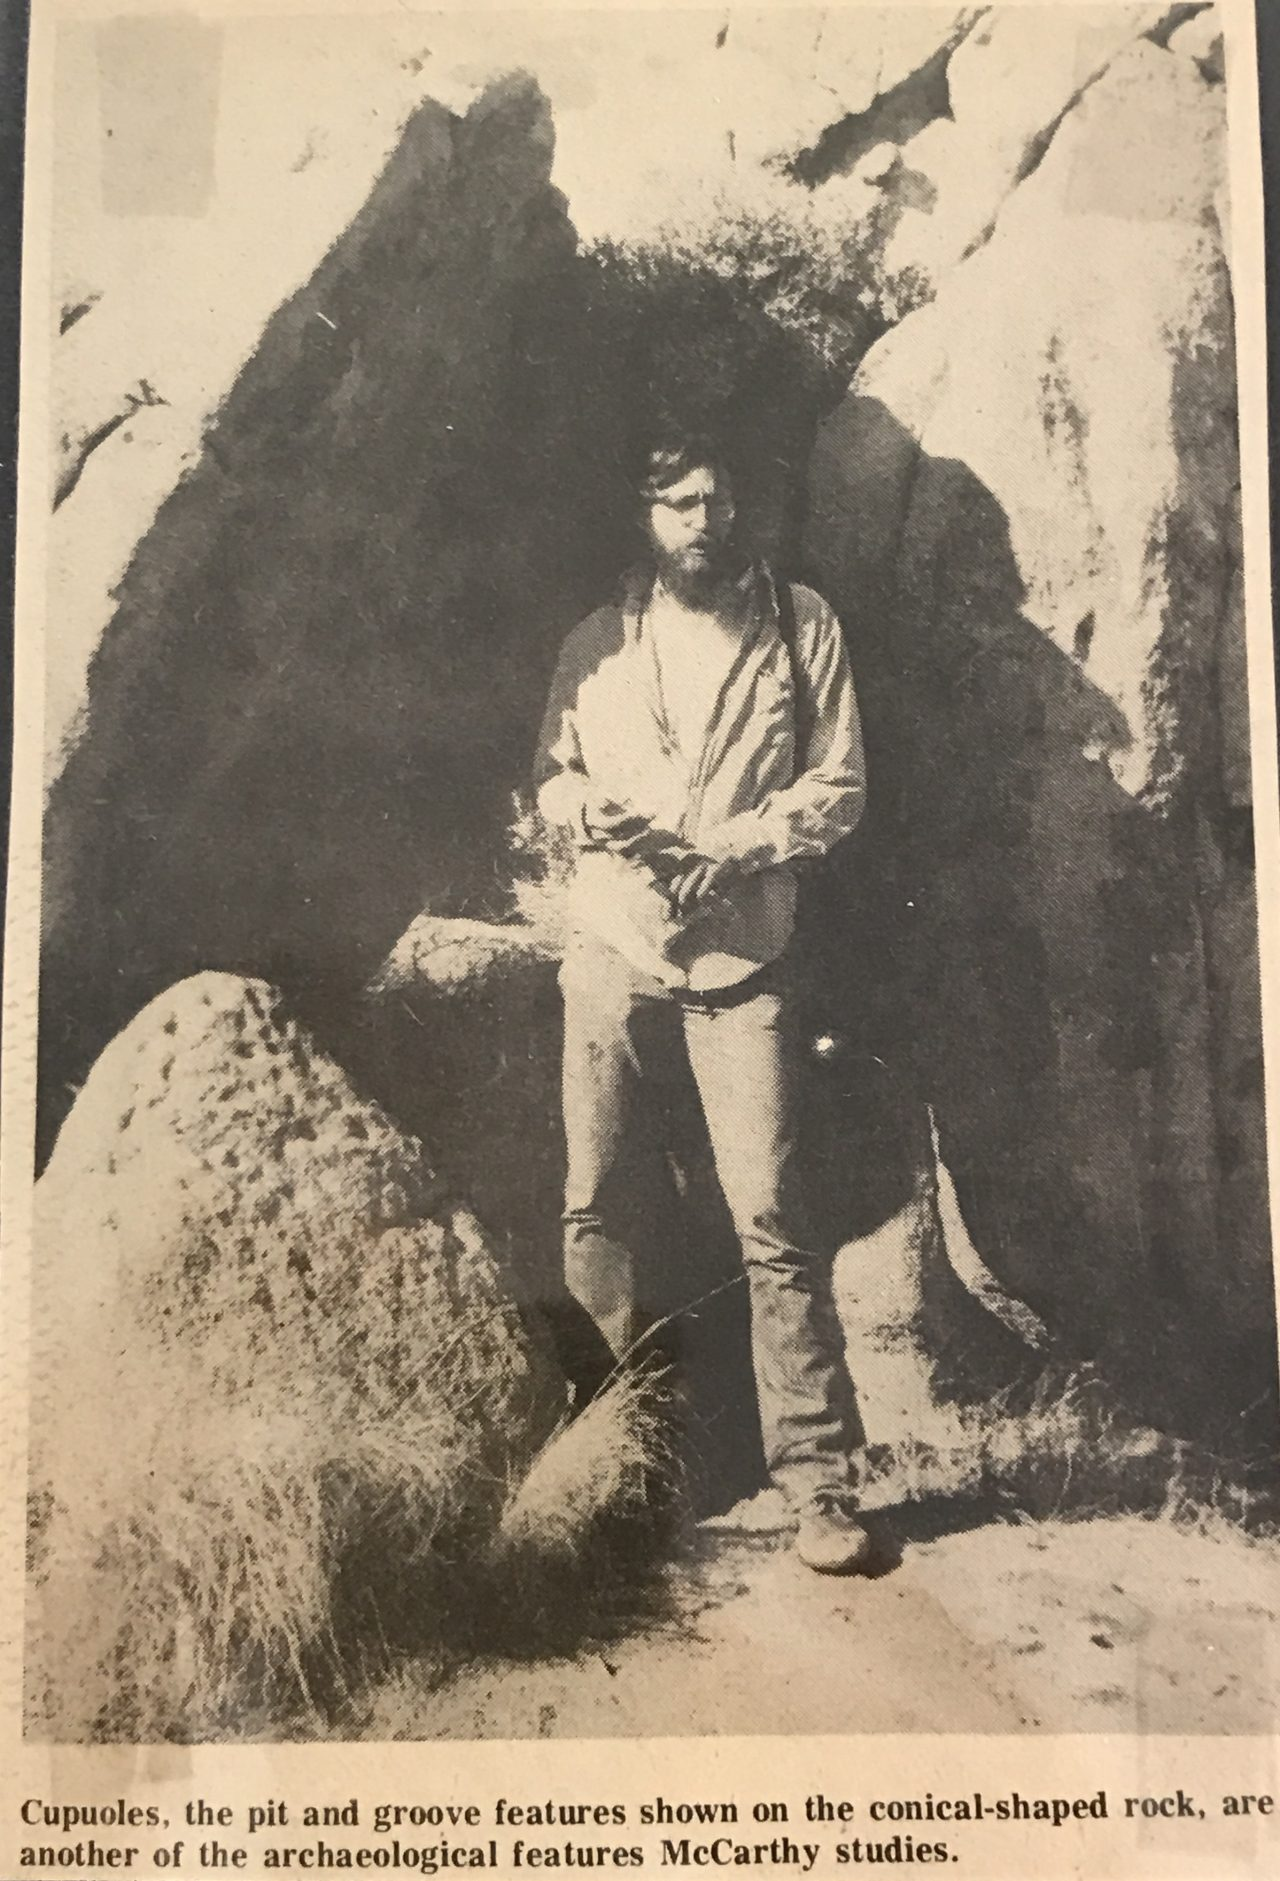 A newspaper clipping (photo)from 40 years ago featuring Daniel McCarthy